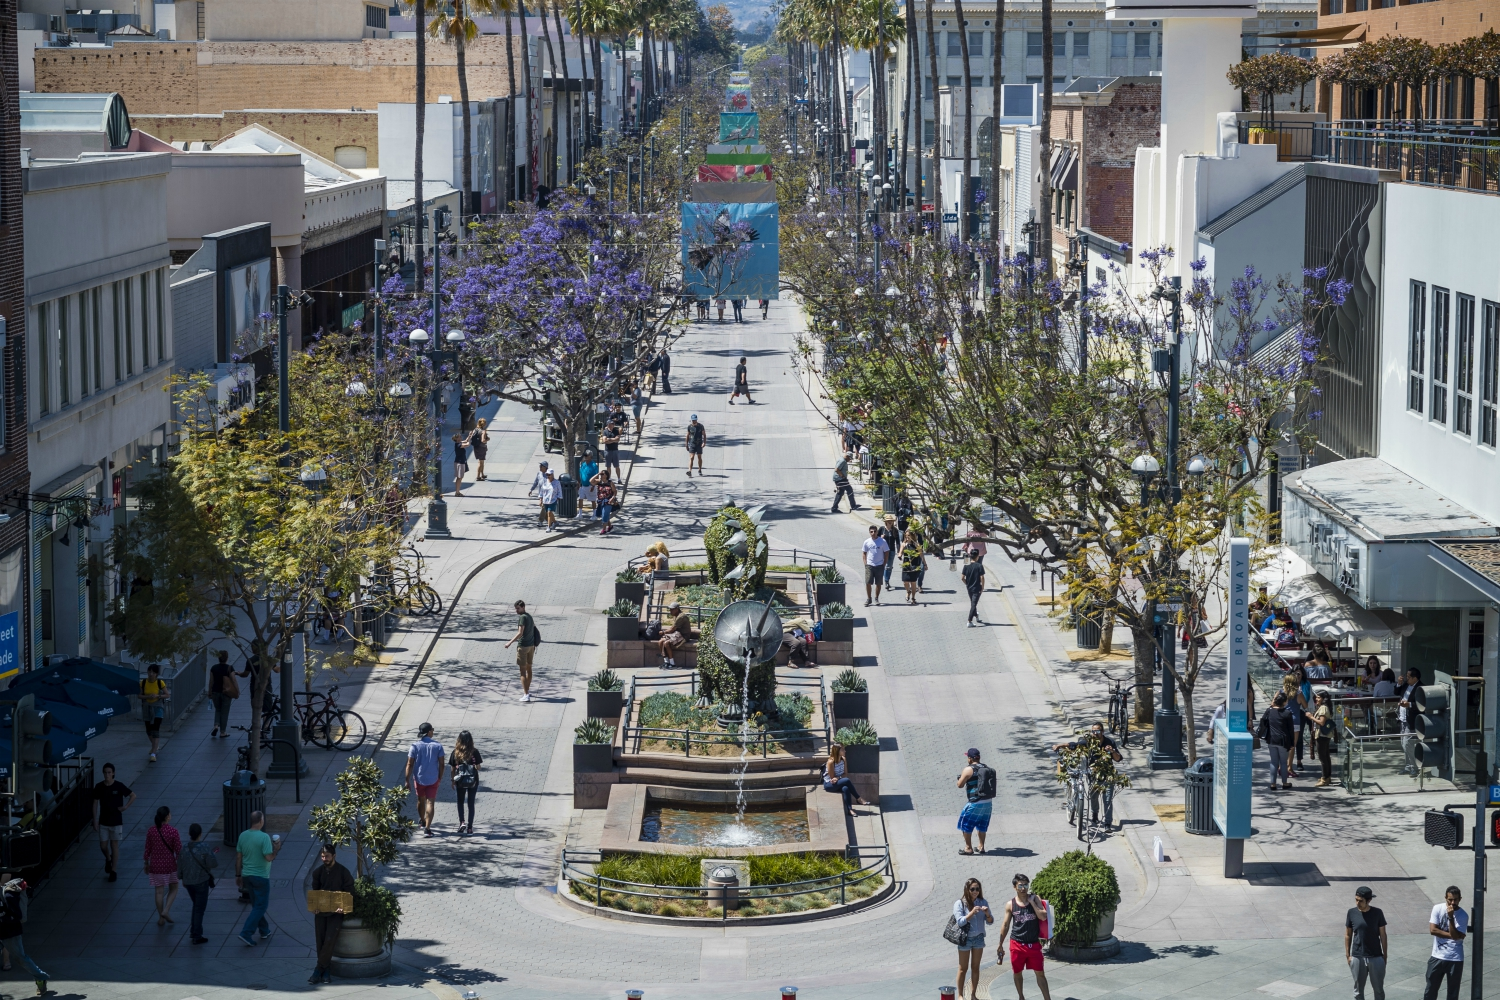 Third Street Promenade >> How Santa Monica Is Trying To Lure People Back To The Third Street